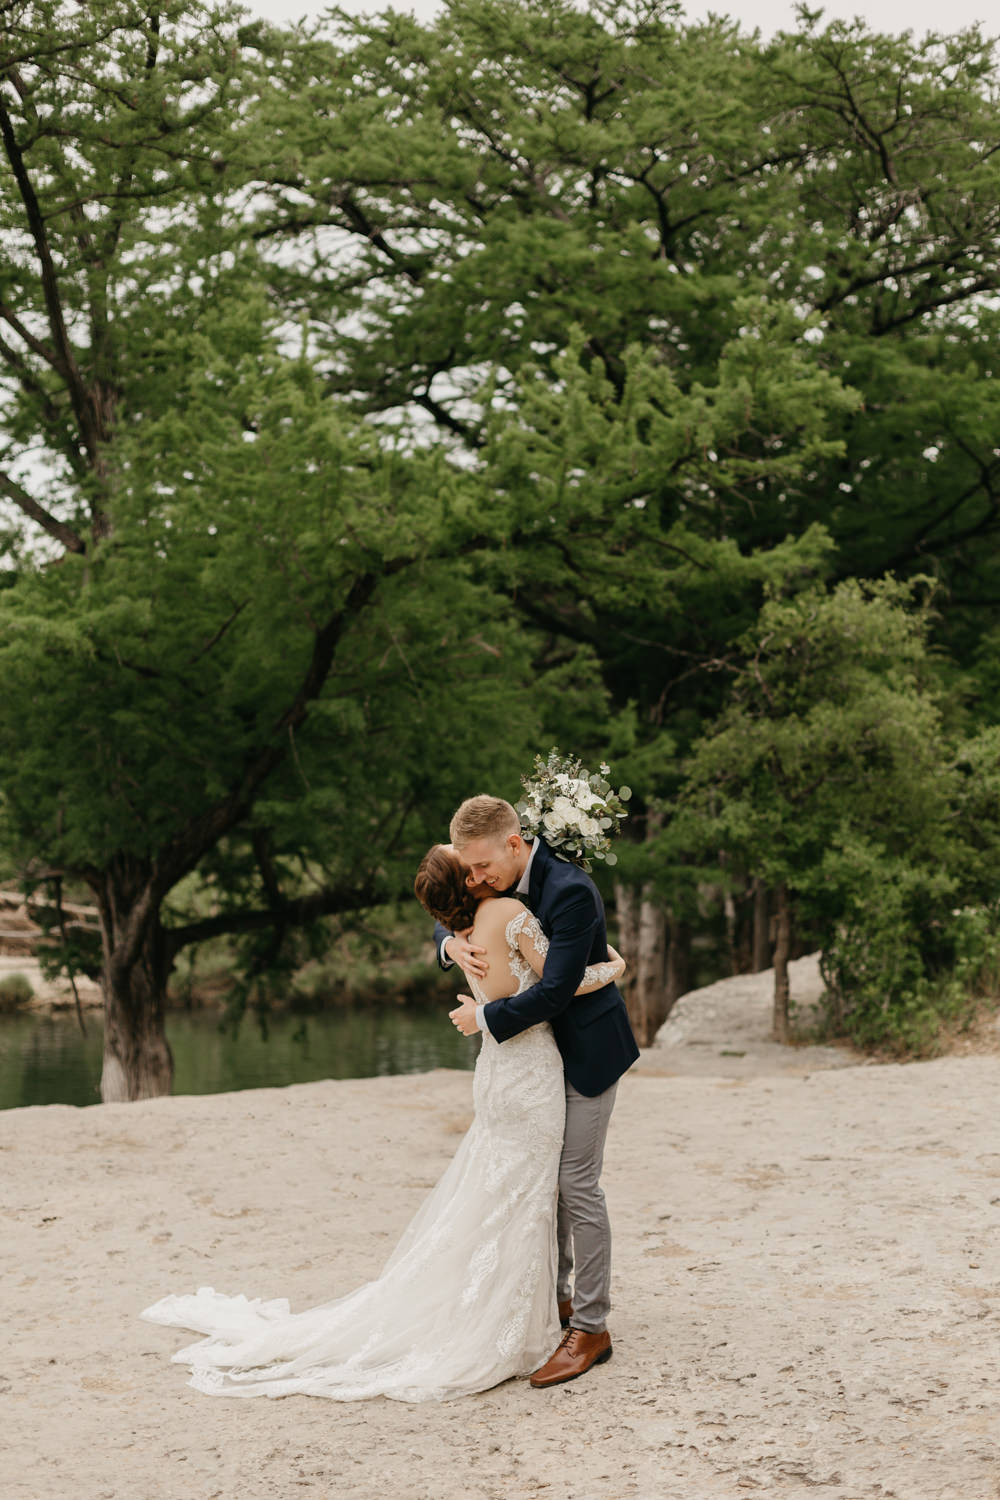 HaileyDylan_Austin Elopement Photographer Austin Wedding Photographer-119.jpg